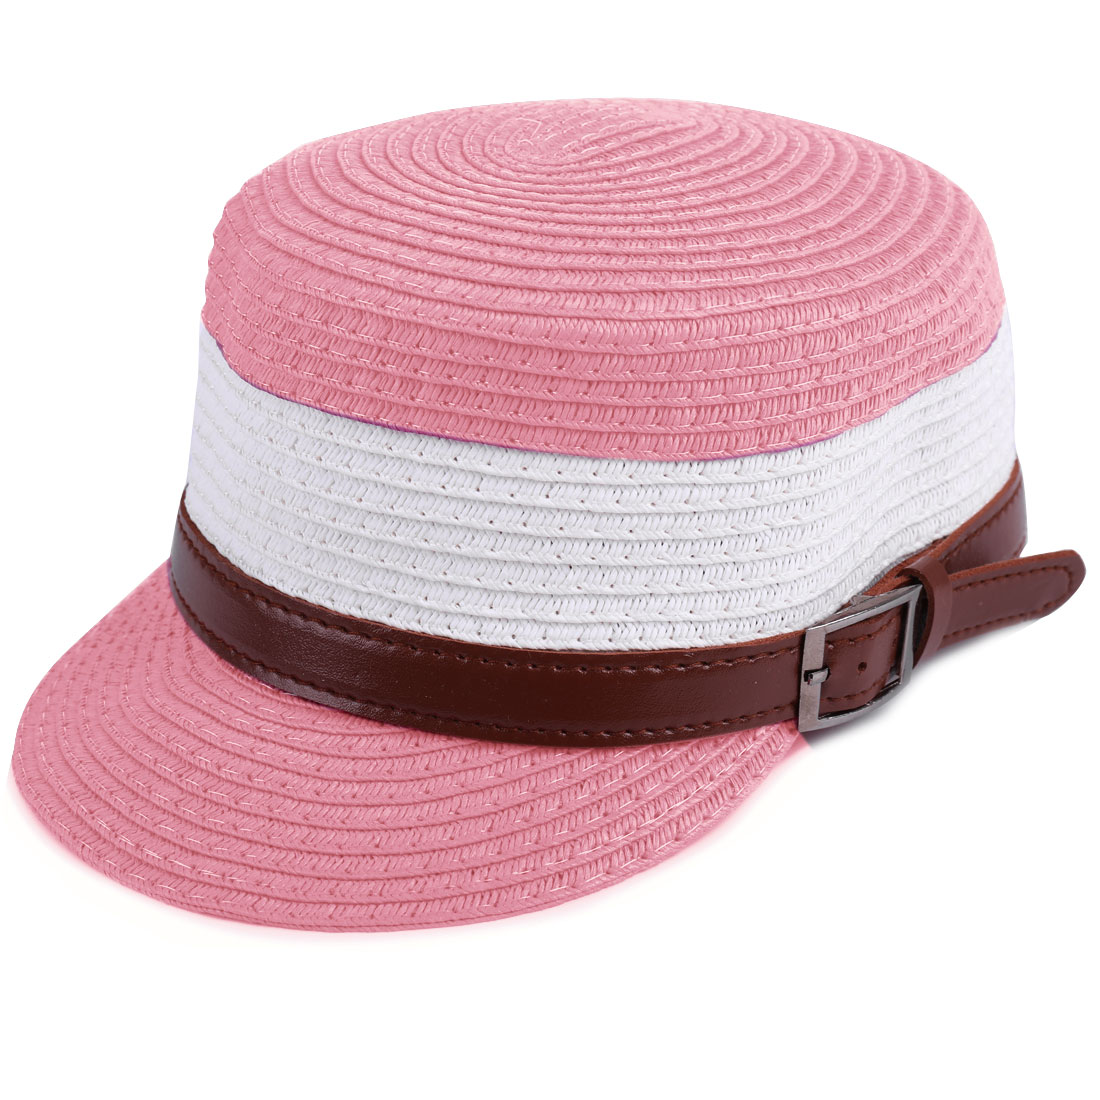 Boys Girls Color Blocking Belt Decor Woven Straw Cap Pink White